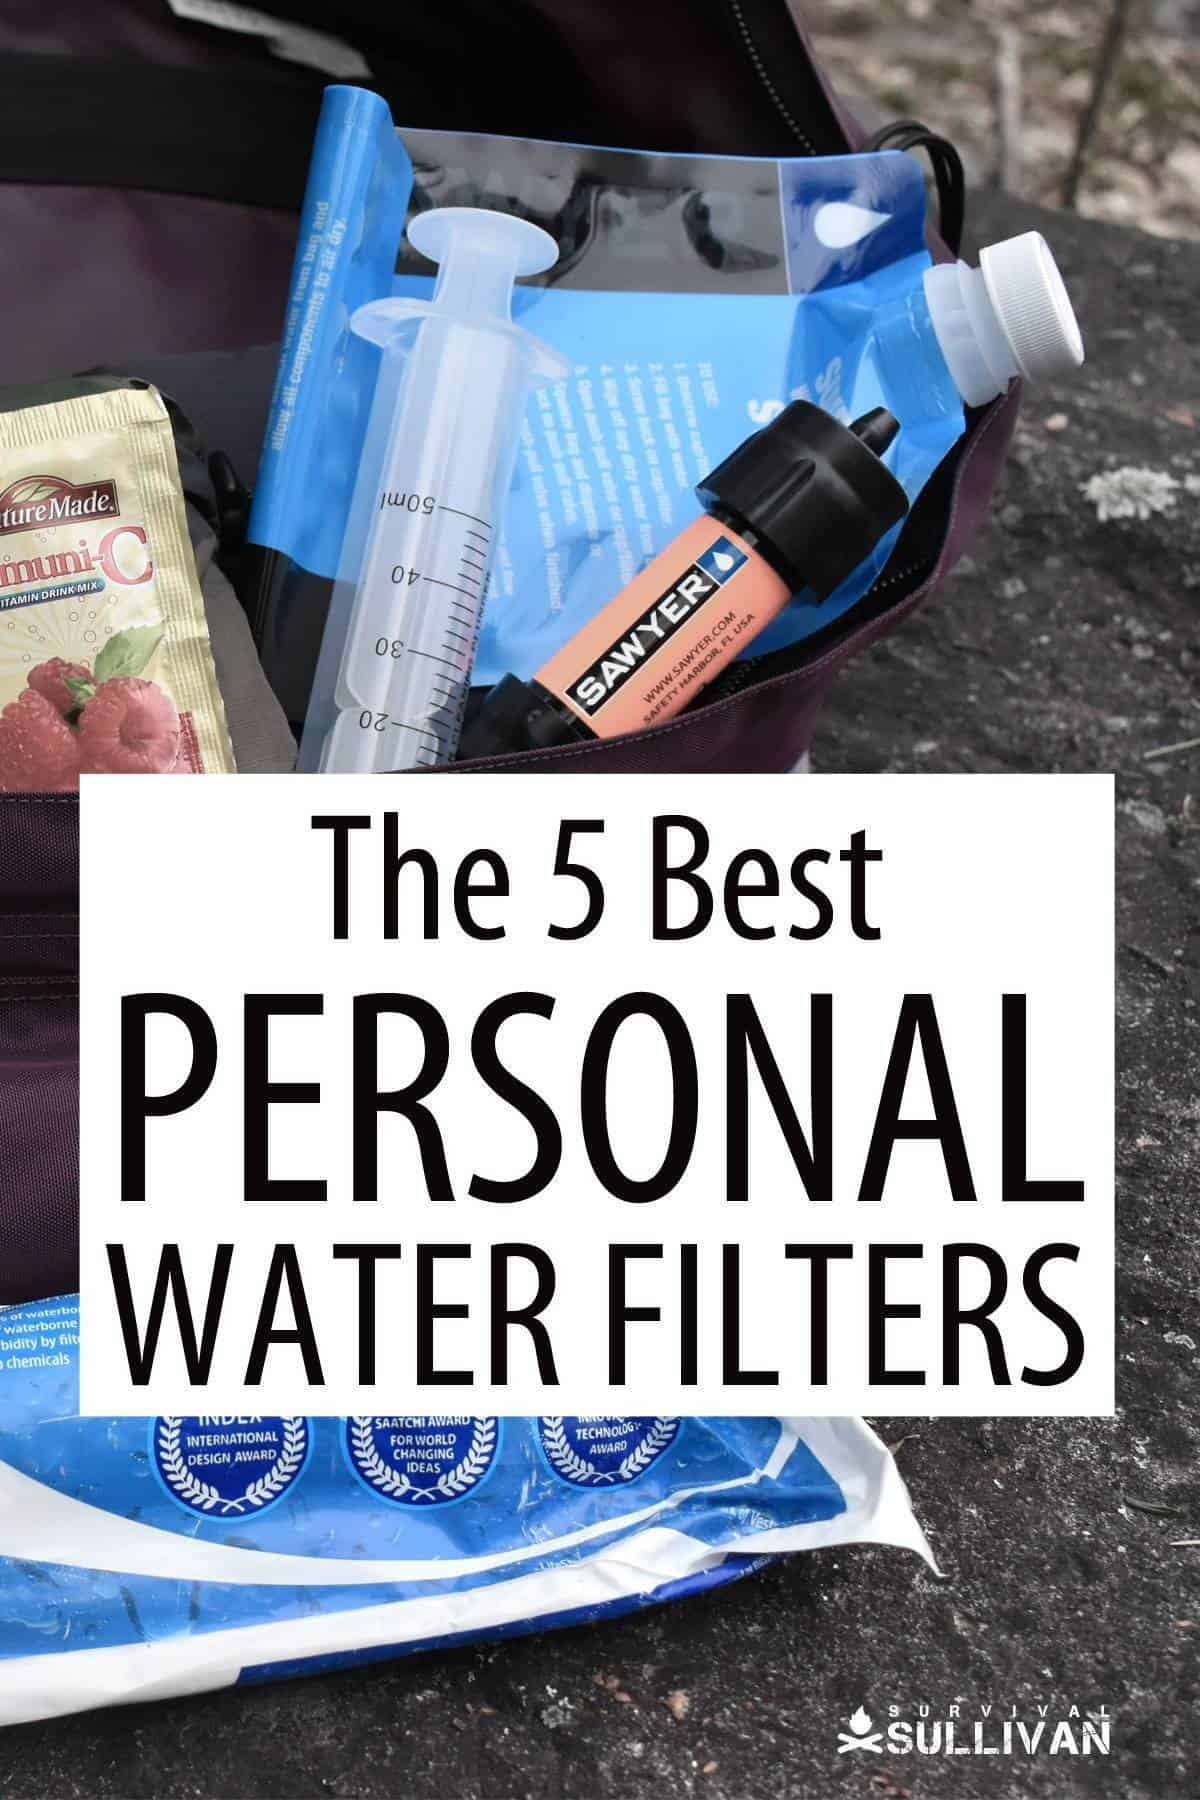 best personal water filters Pinterest image